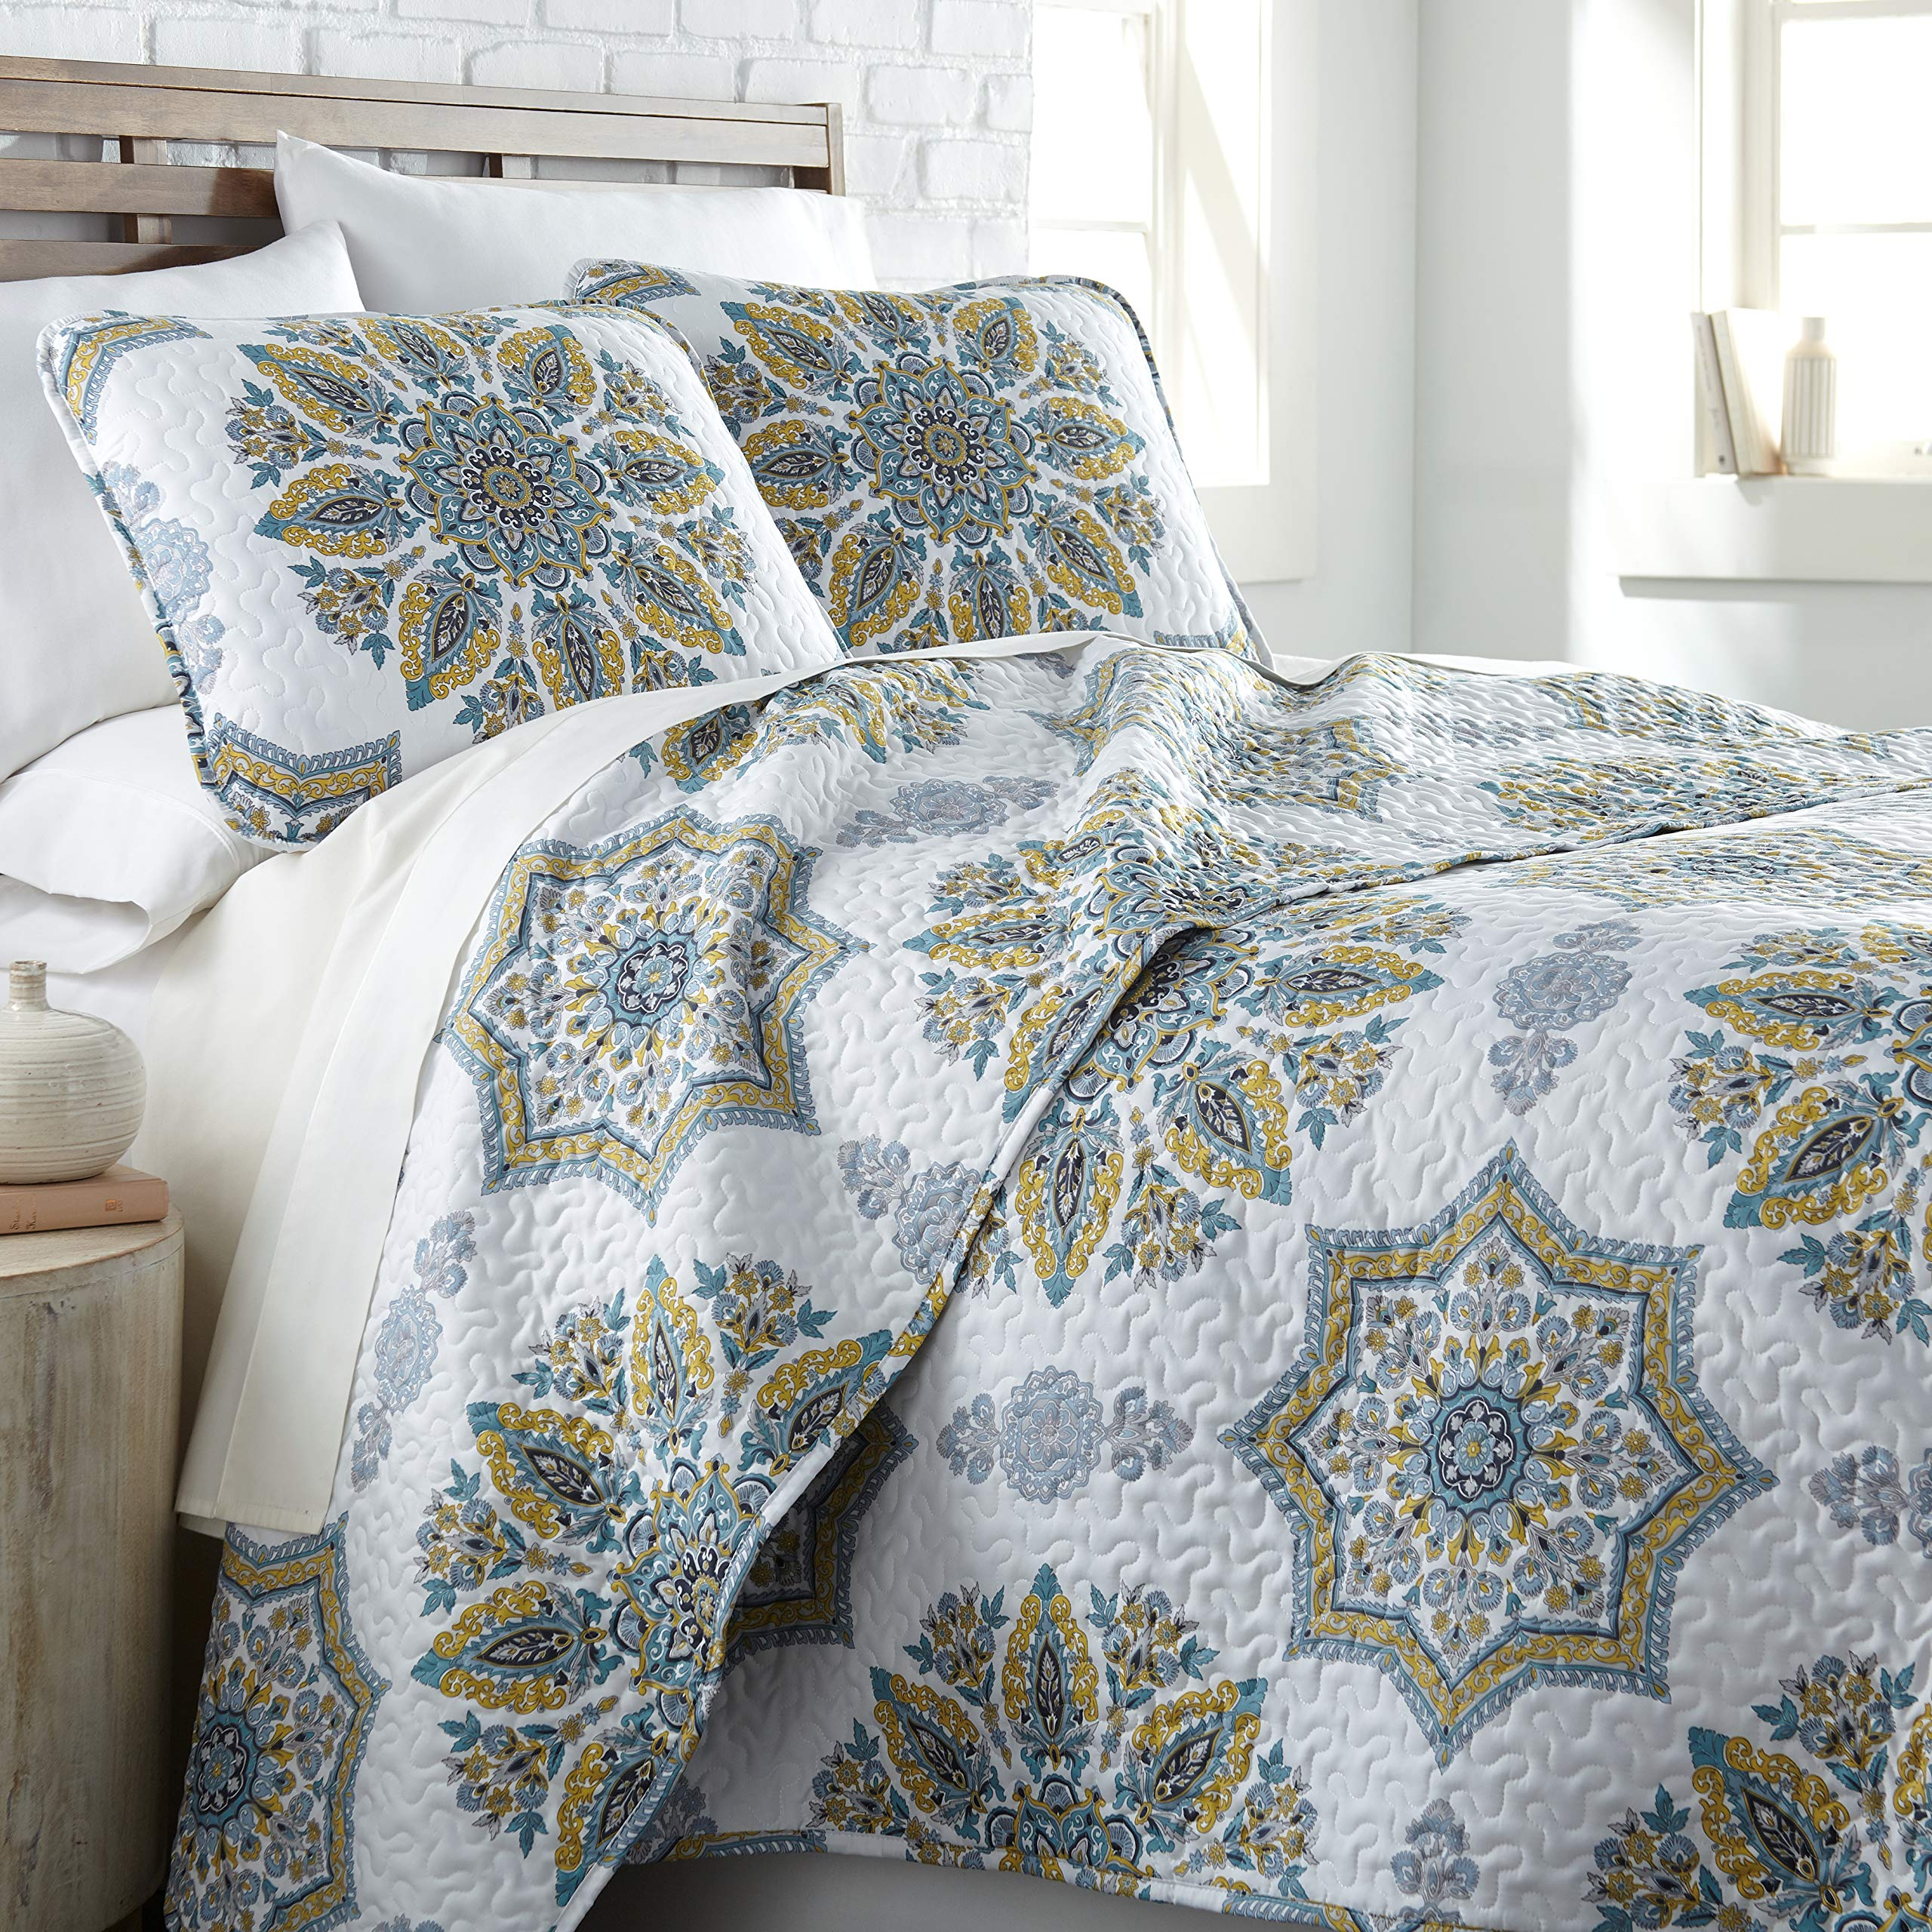 Southshore Fine Living, Inc. The Infinity Collection Quilt 2 Piece Set, Twin/Twin XL, Aqua